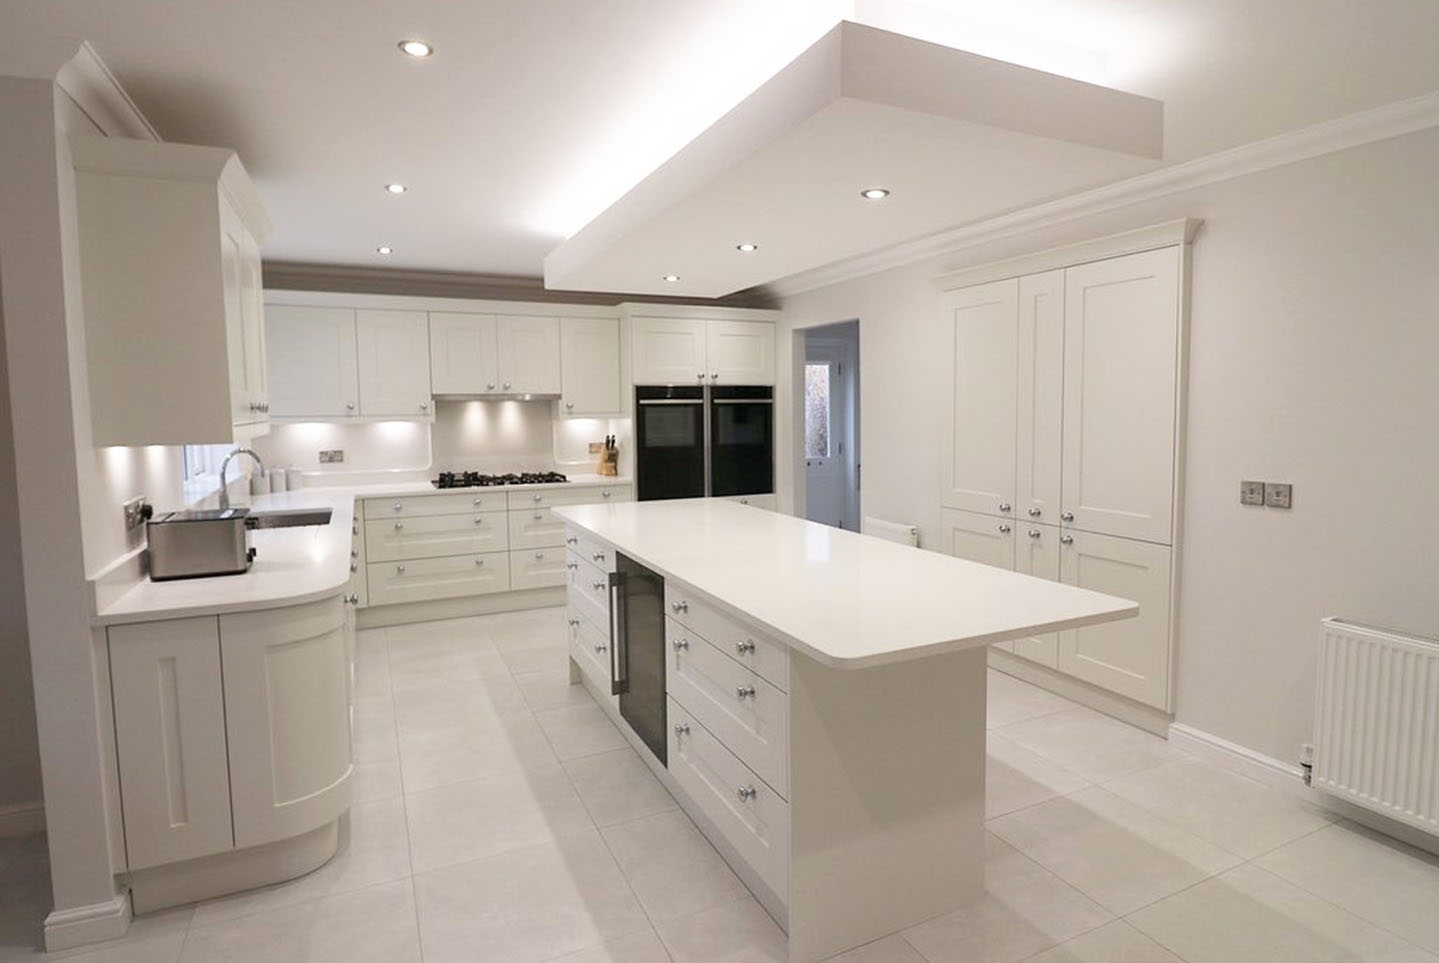 porcelain handless kitchen Liverpool